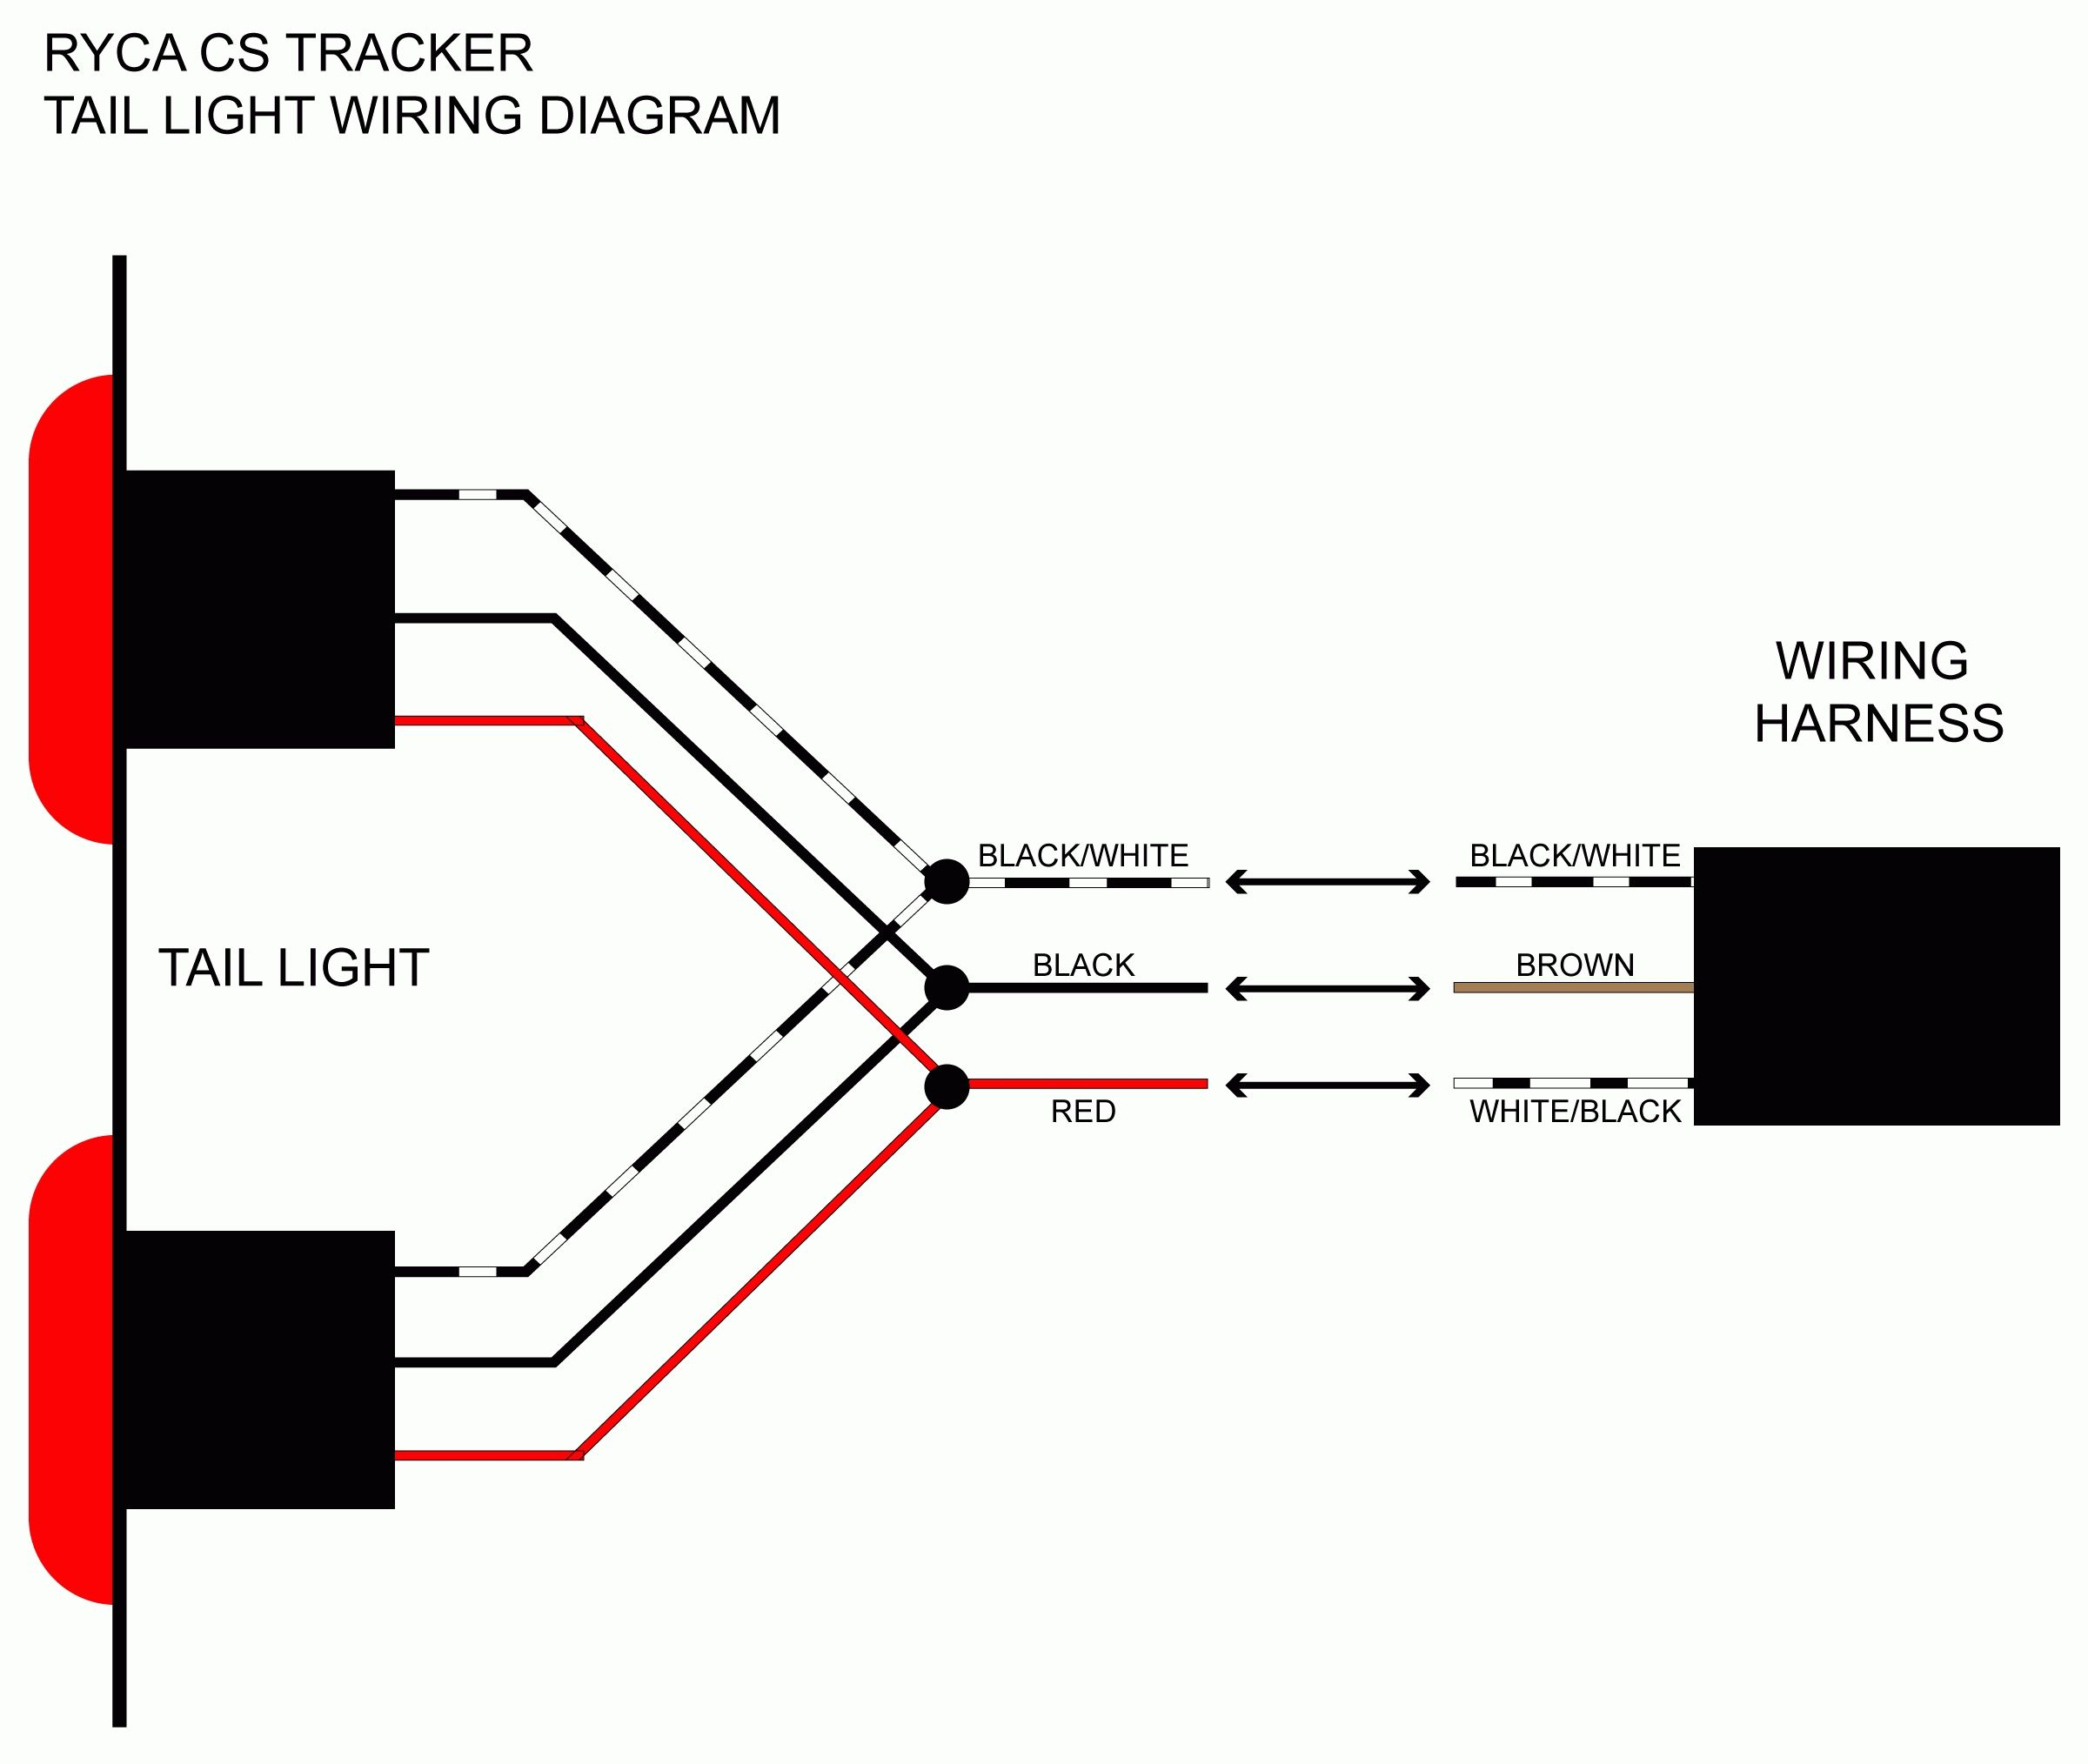 wiring diagram tail light schema wiring diagram rh 5 7 19 marias grillrestaurant de